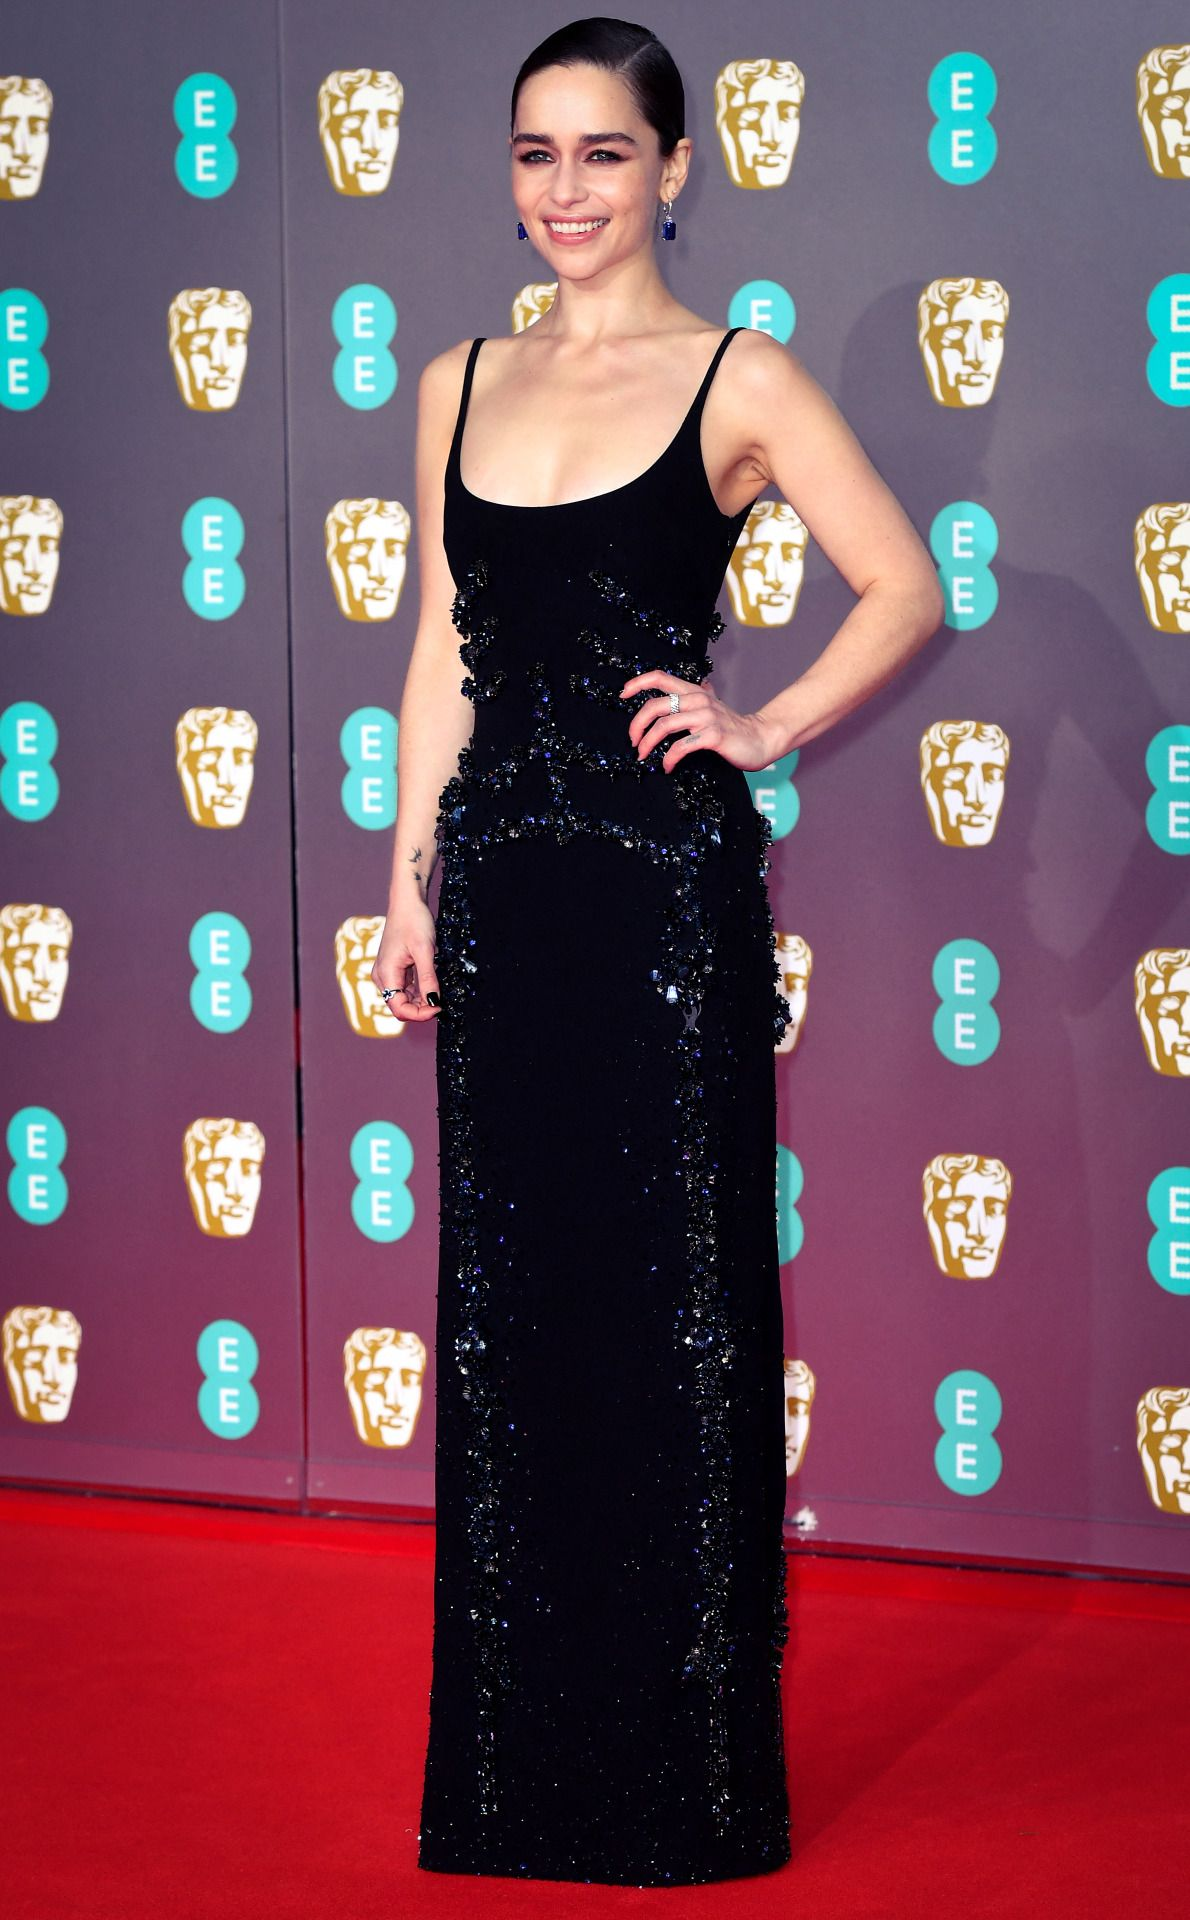 Fu T Emilia Clarke Attends The British Academy Film In 2020 British Academy Film Awards Emilia Clarke Royal Albert Hall